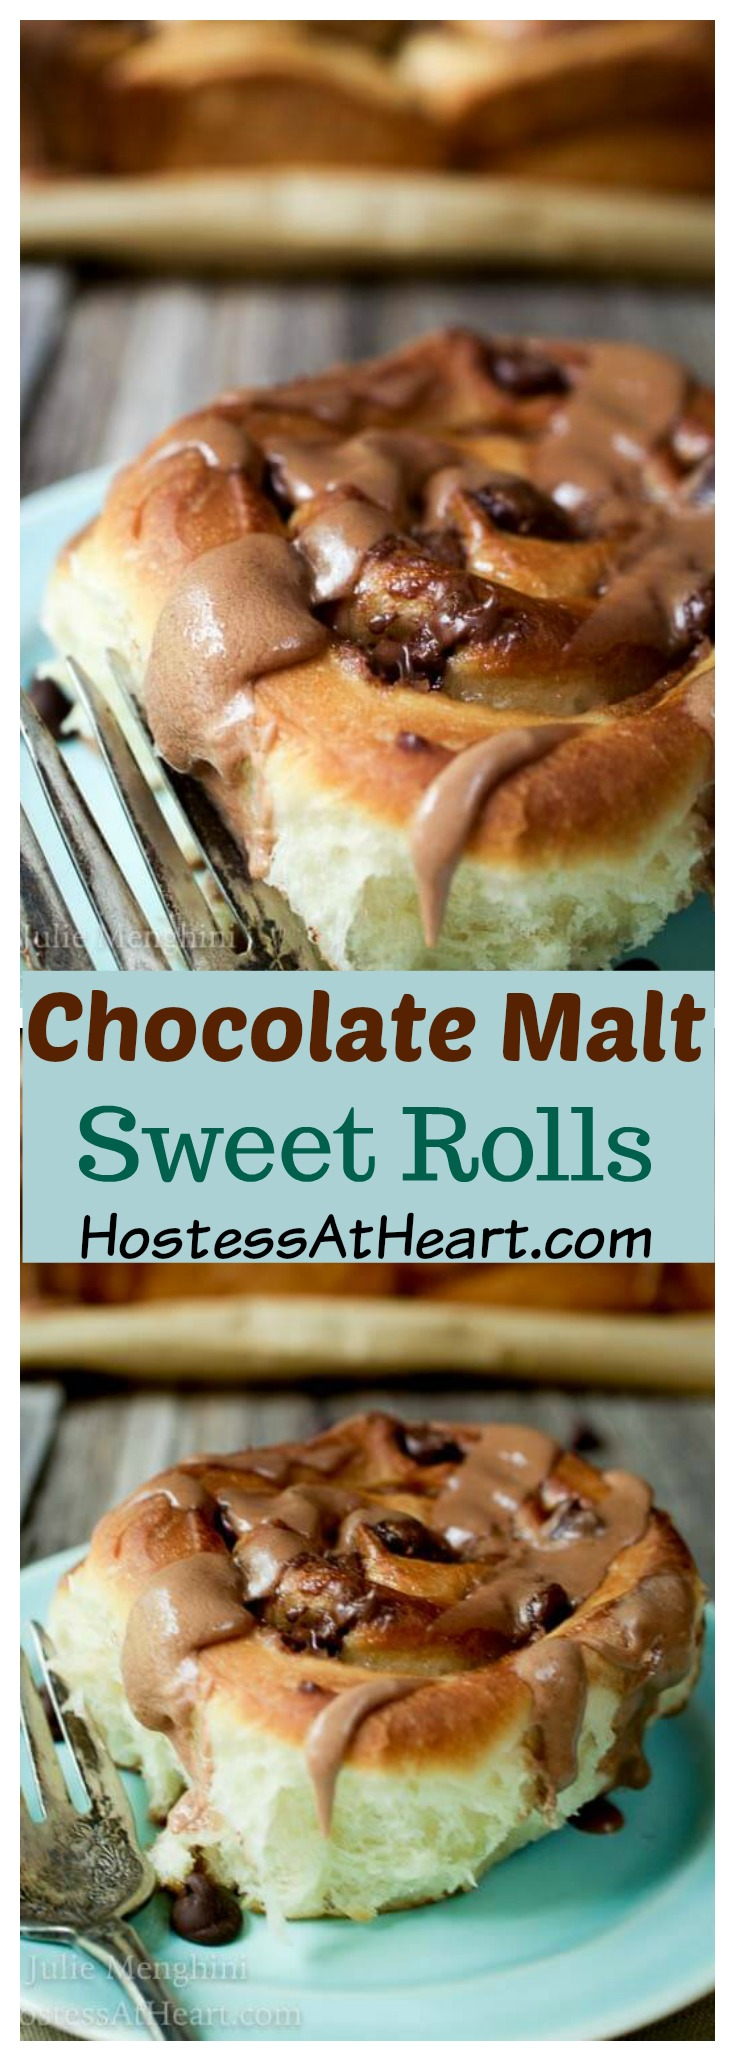 This Chocolate Malt Sweet Rolls #Recipe makes a soft and tender roll that tastes like you're eating a chocolate malt.  Who wouldn't want that for breakfast? #sweetrolls, #breakfast, #cinnamonrolls, #breakfastrecipe, #baking